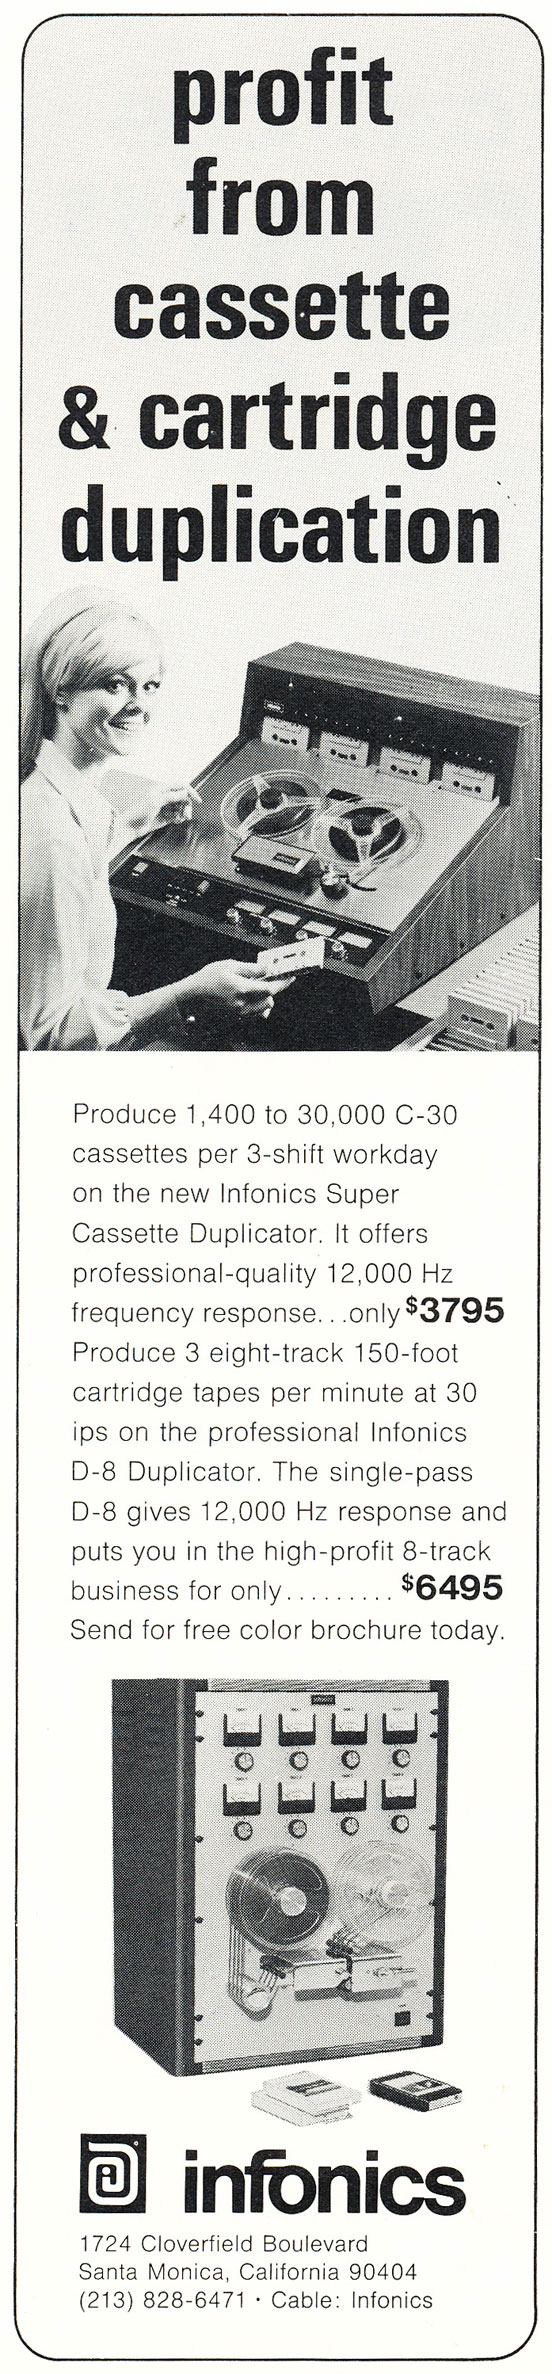 1971 Infonics ad in Reel2ReelTexas.com's vintage recording collection